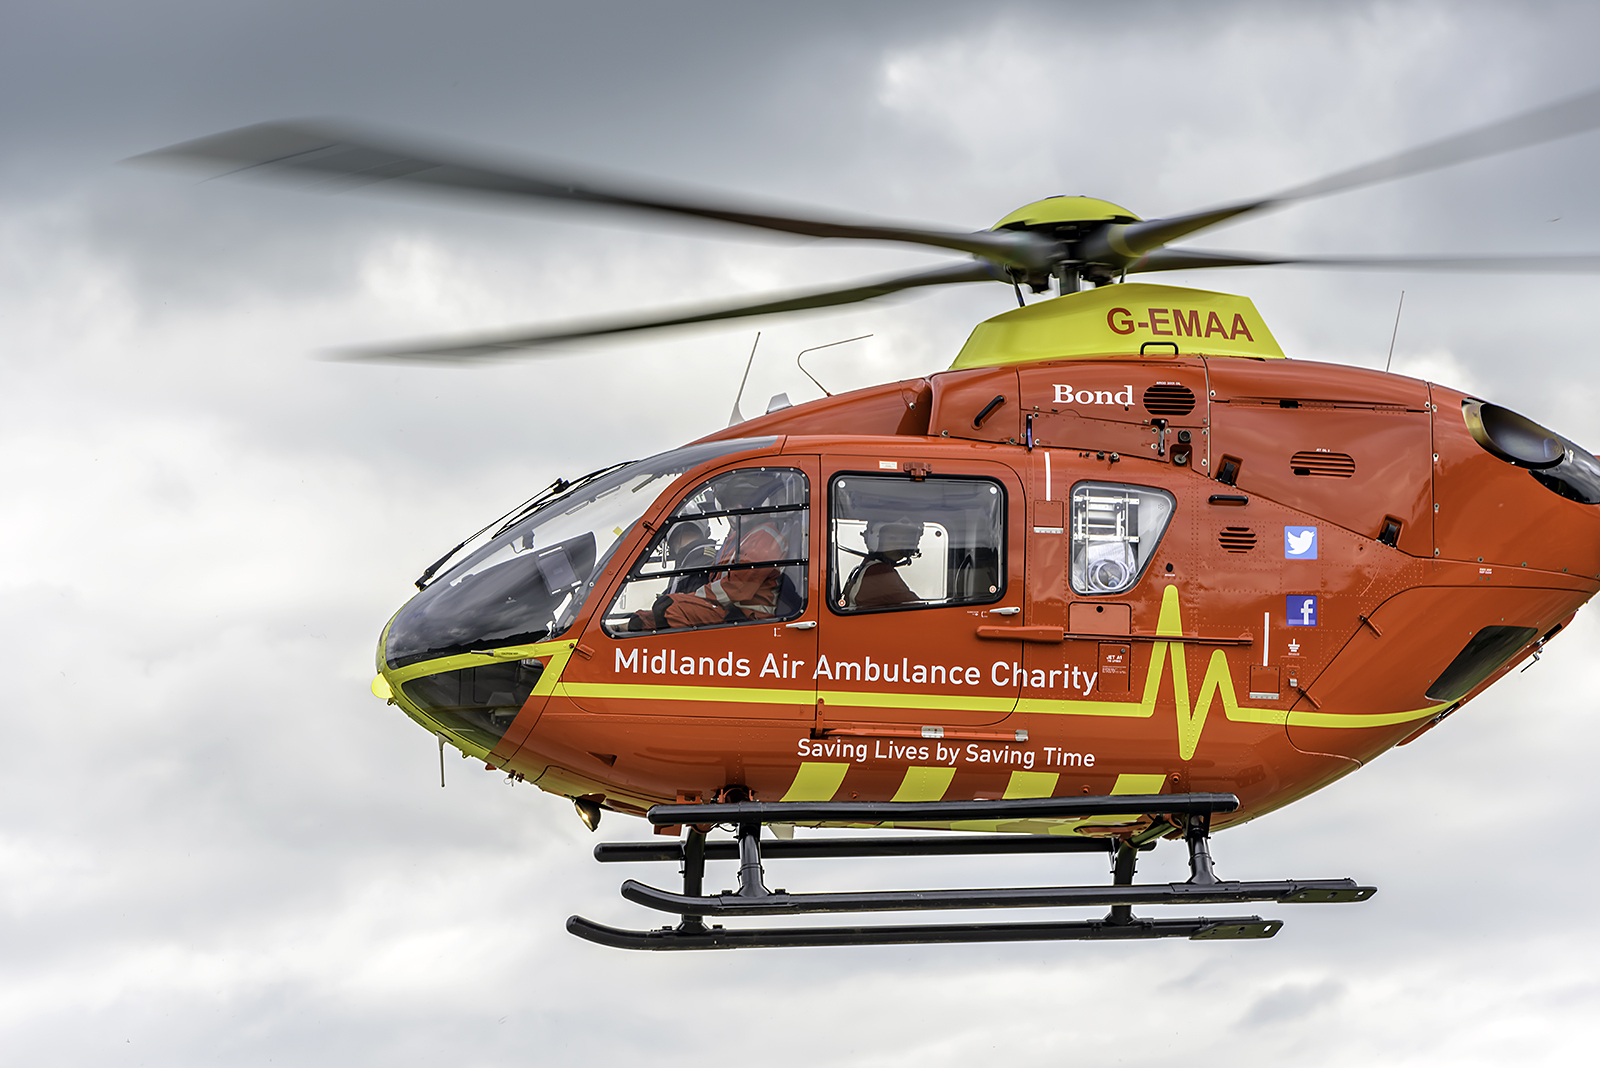 LIFESAViNG: The Maidlands Air Ambulances fly many livesaving missions in Worcestershire. Picture: Paul Humphries